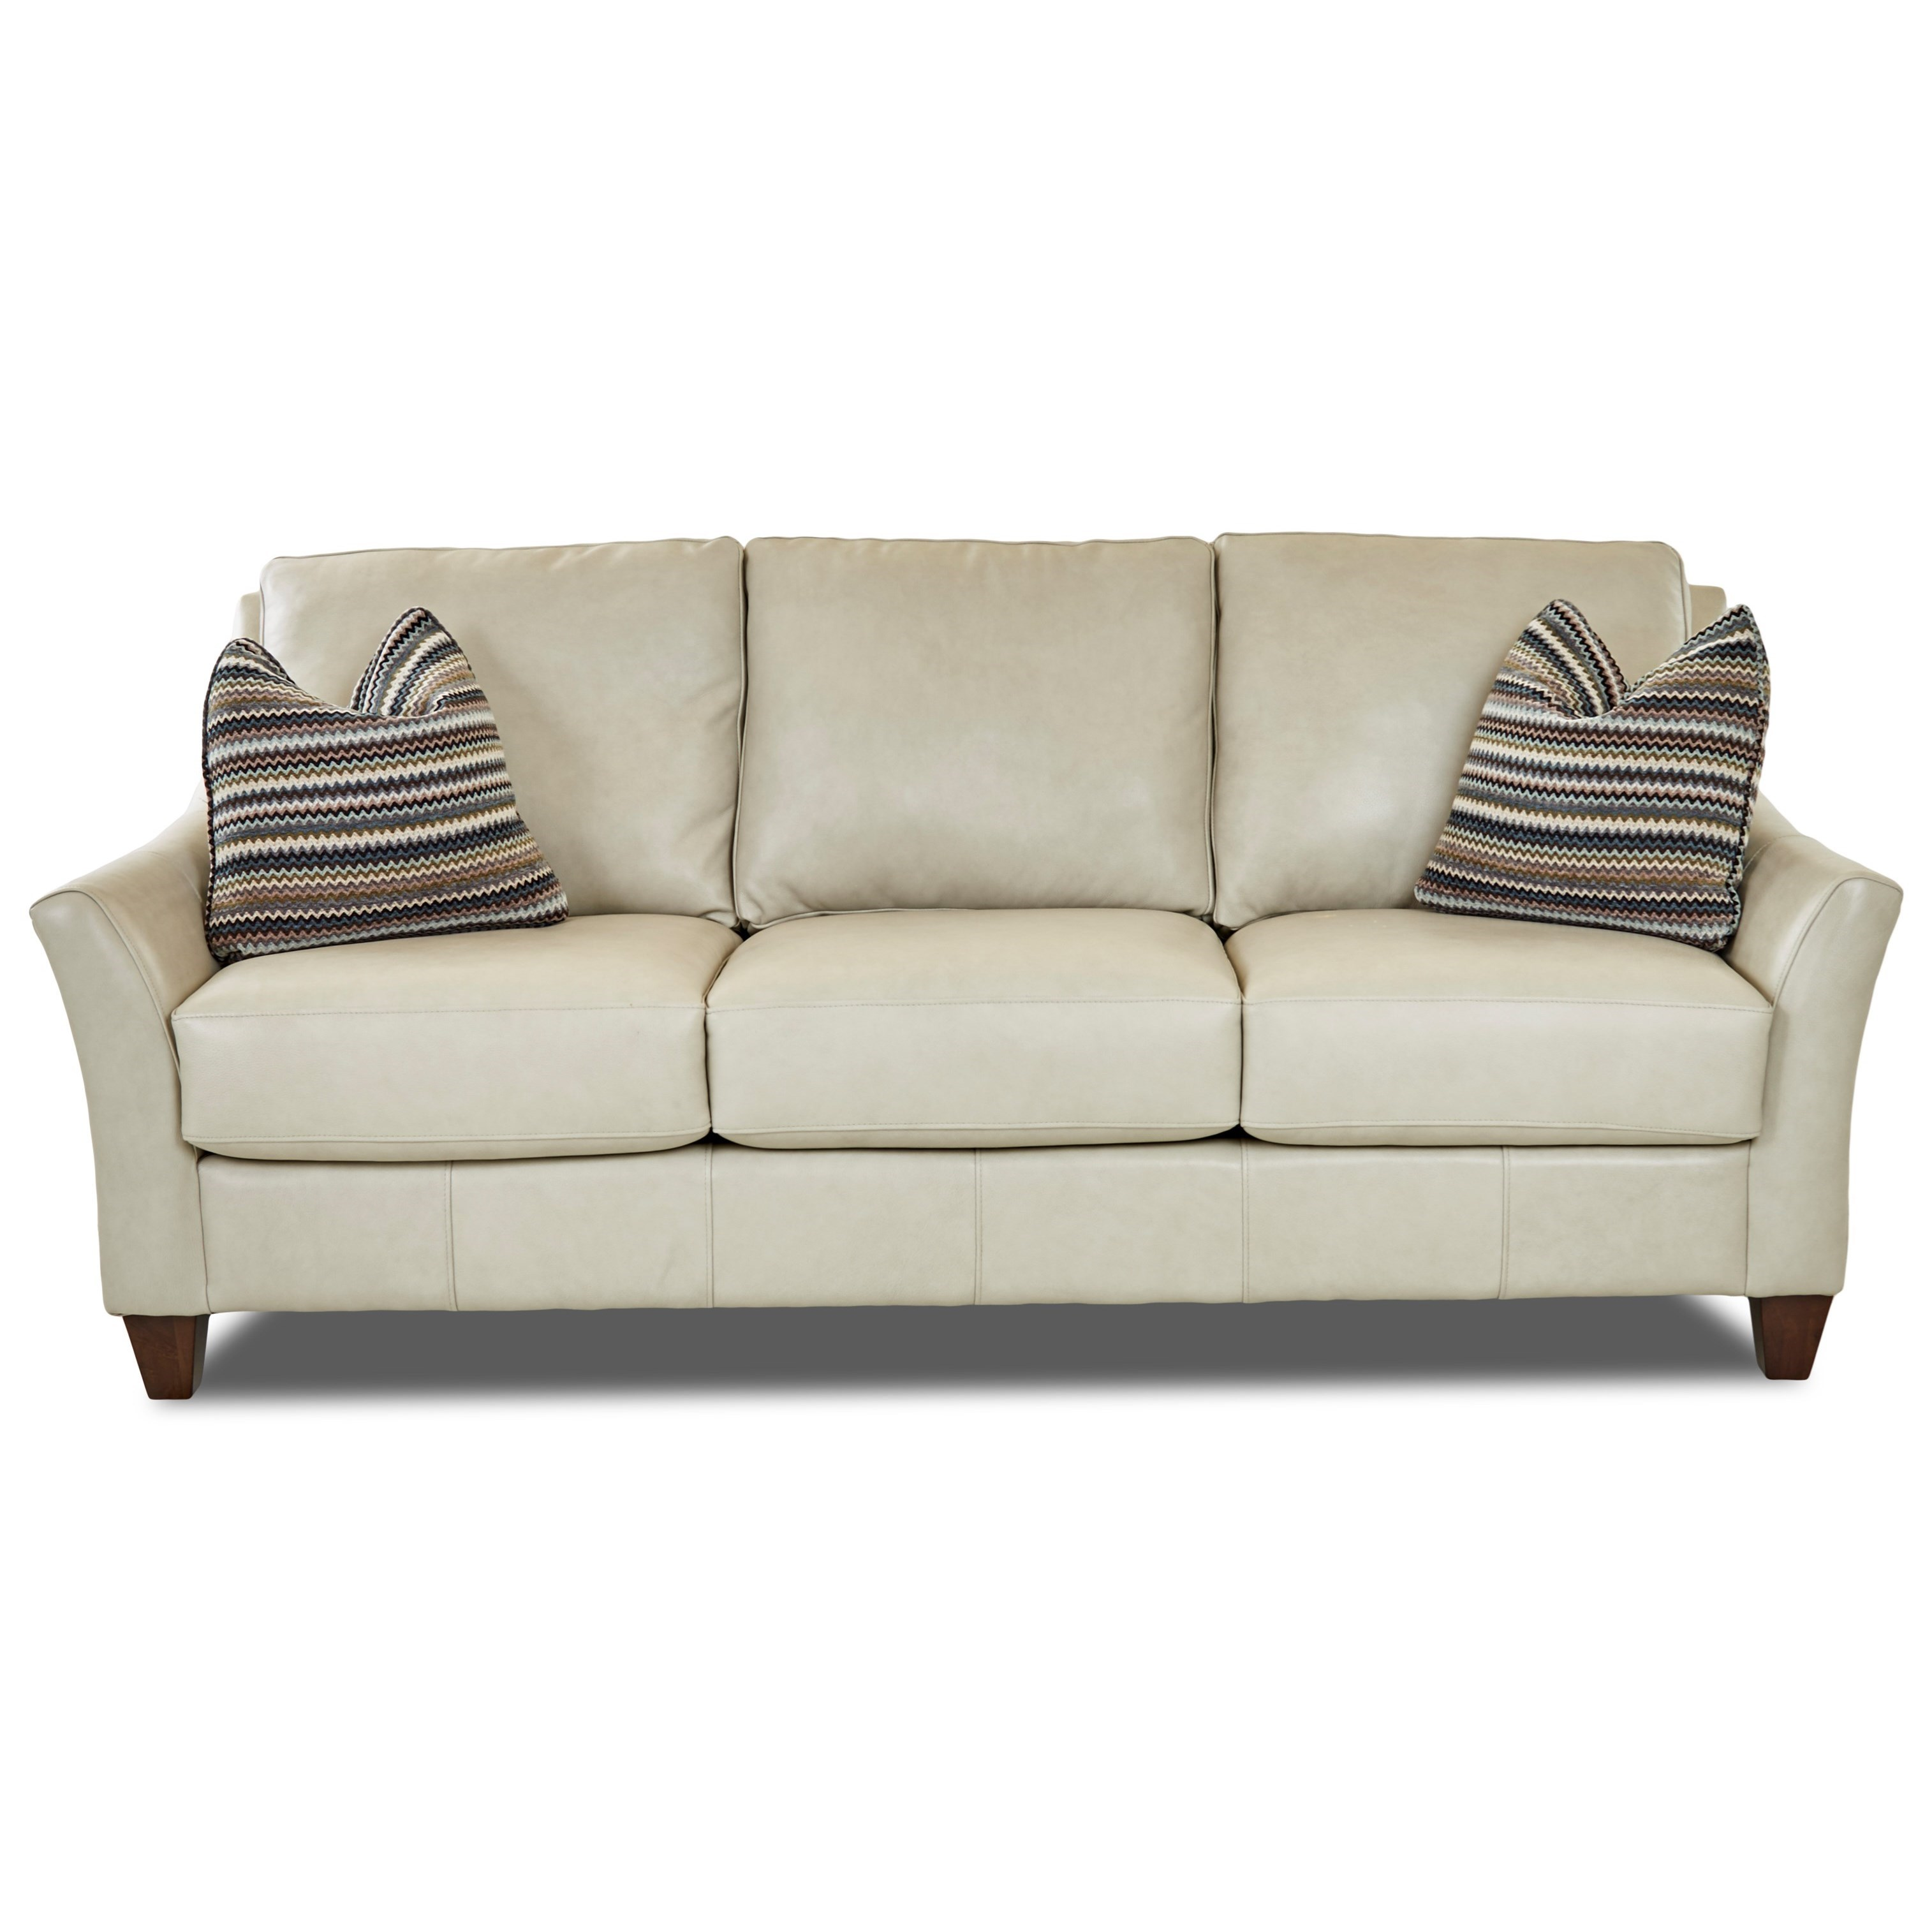 Contemporary Leather Sofa with Toss Pillows